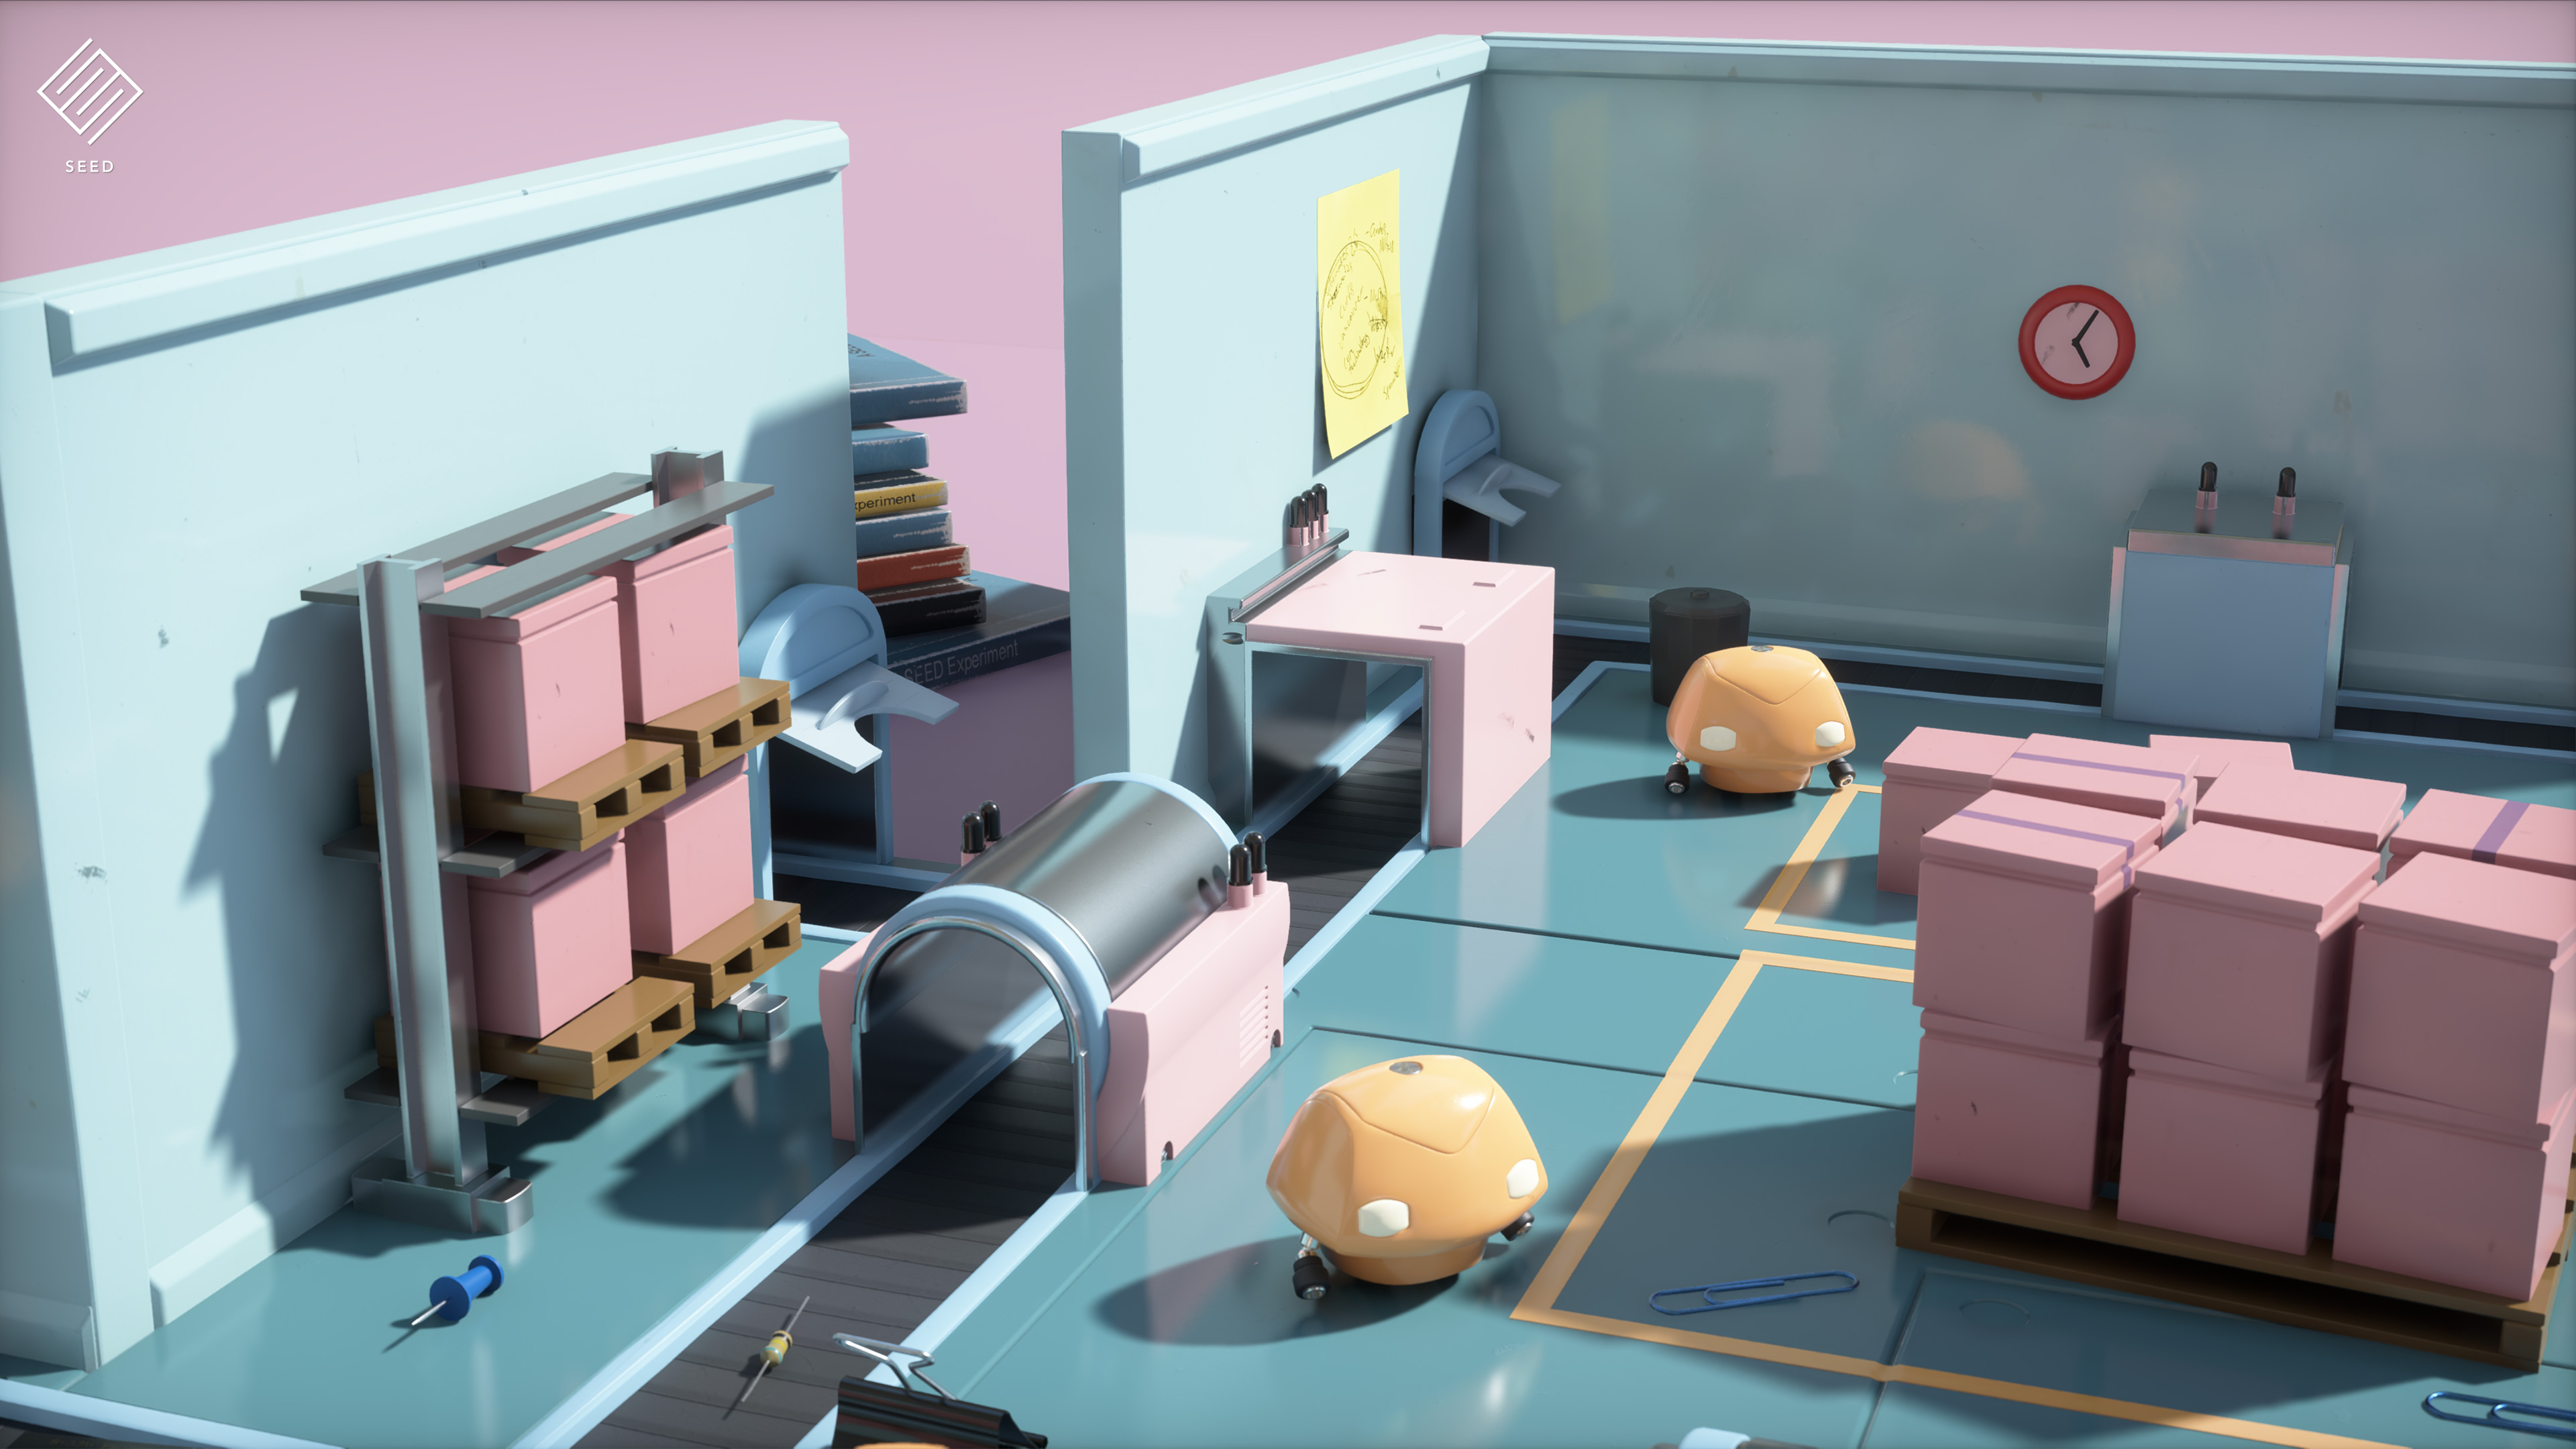 Microsoft has announced the DirectX Raytracing